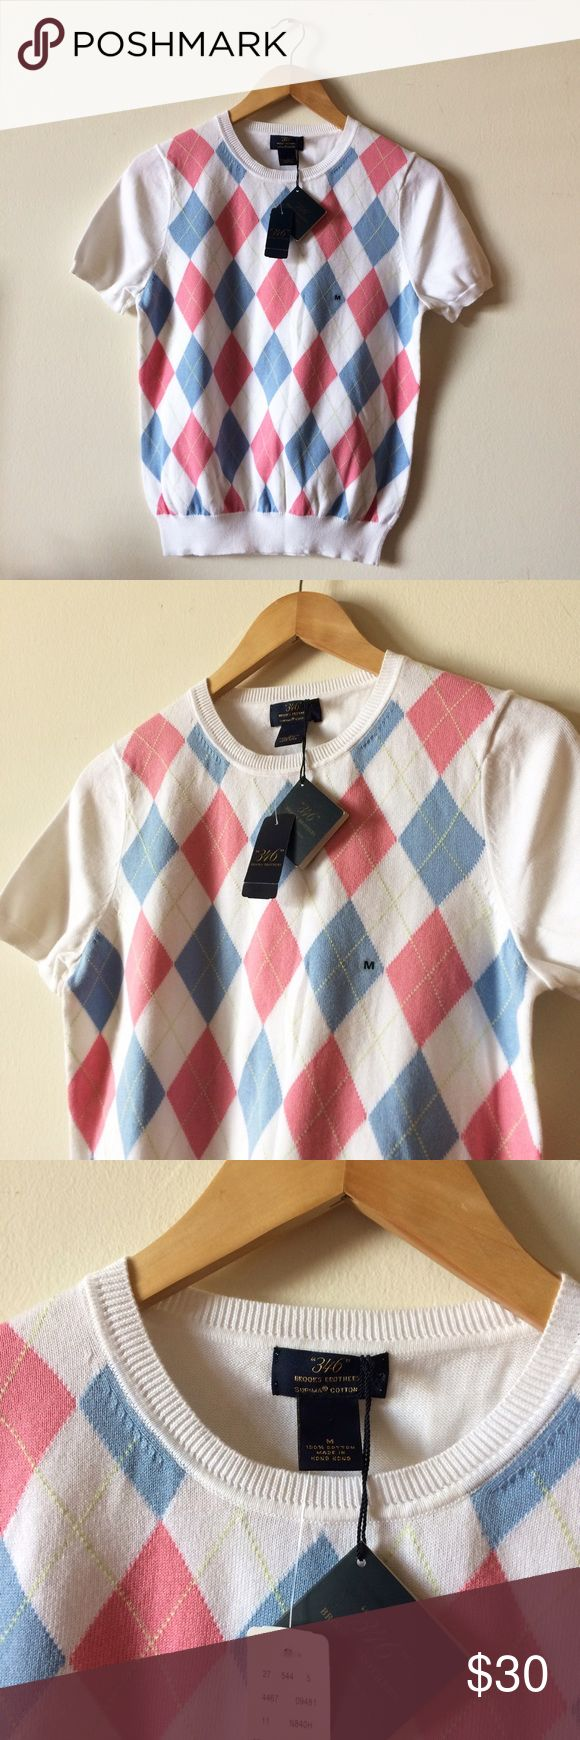 346 Brooks Brothers Top New with tag. 100% Cotton Brooks Brothers Tops